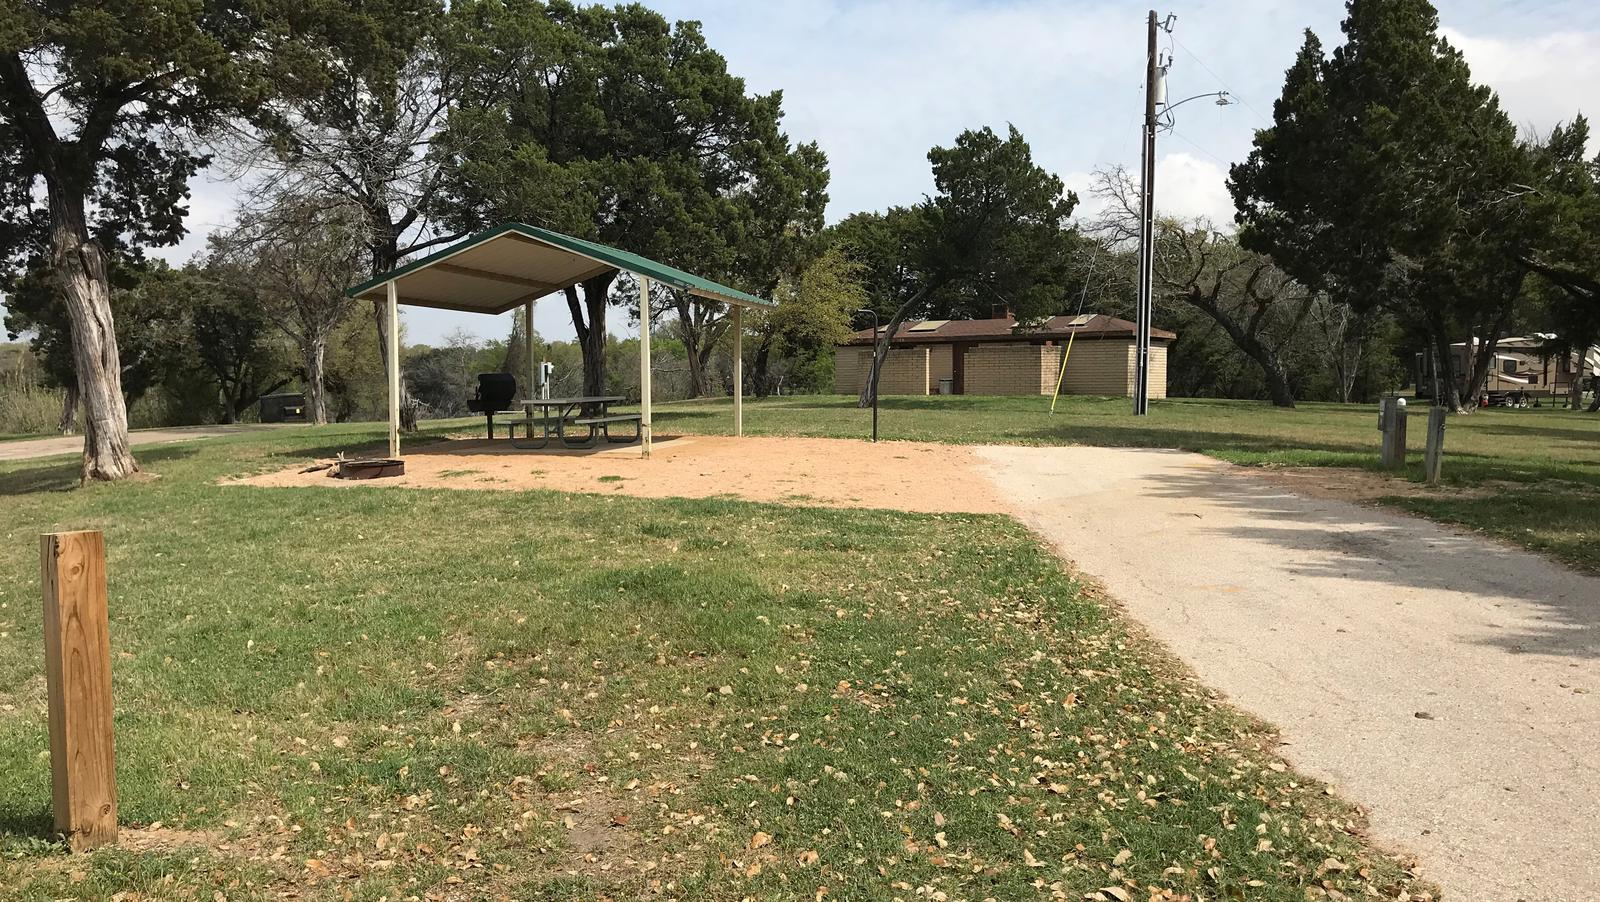 RV site with grill, fire ring, covered picnic table, and restroom/shower facilities nearby